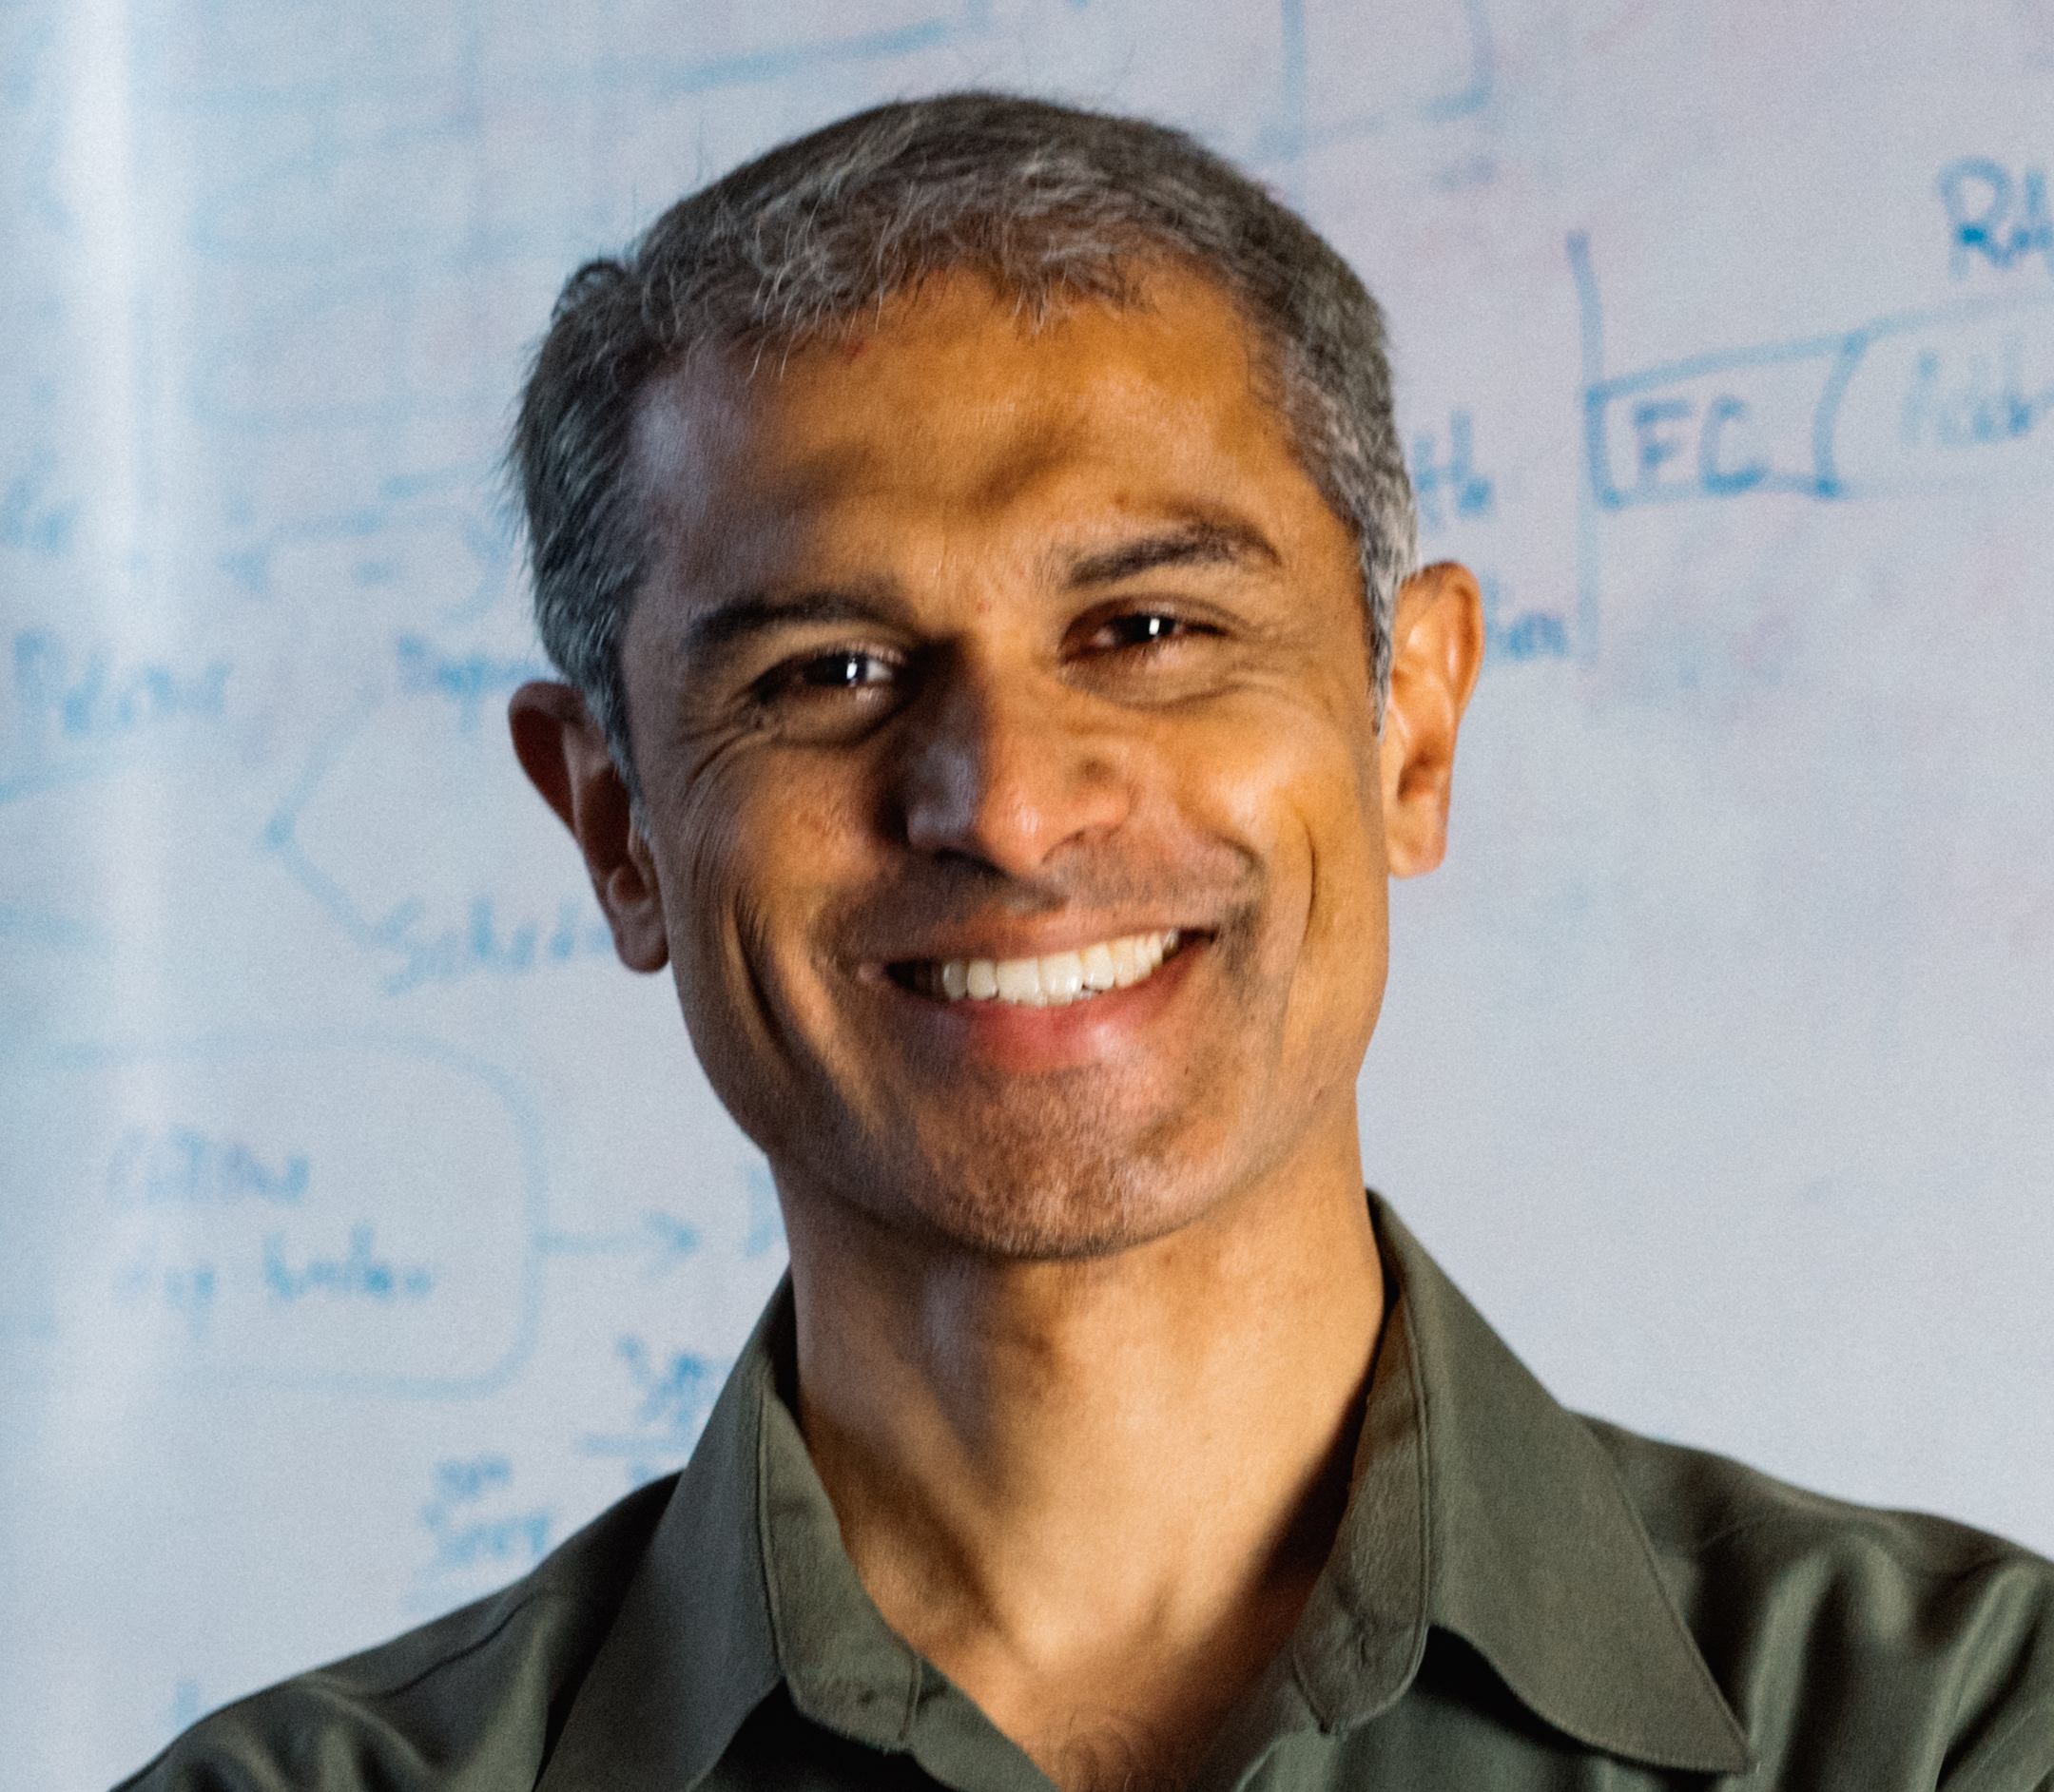 Hari Balakrishnan - Cambridge Mobile Telematics, MIT   Hari is Founder and CTO of Cambridge Mobile Telematics, which raised $500M from the Softbank Vision Fund in 2018. He was previously a cofounder of StreamBase Systems and advisor to Meraki since before its founding.